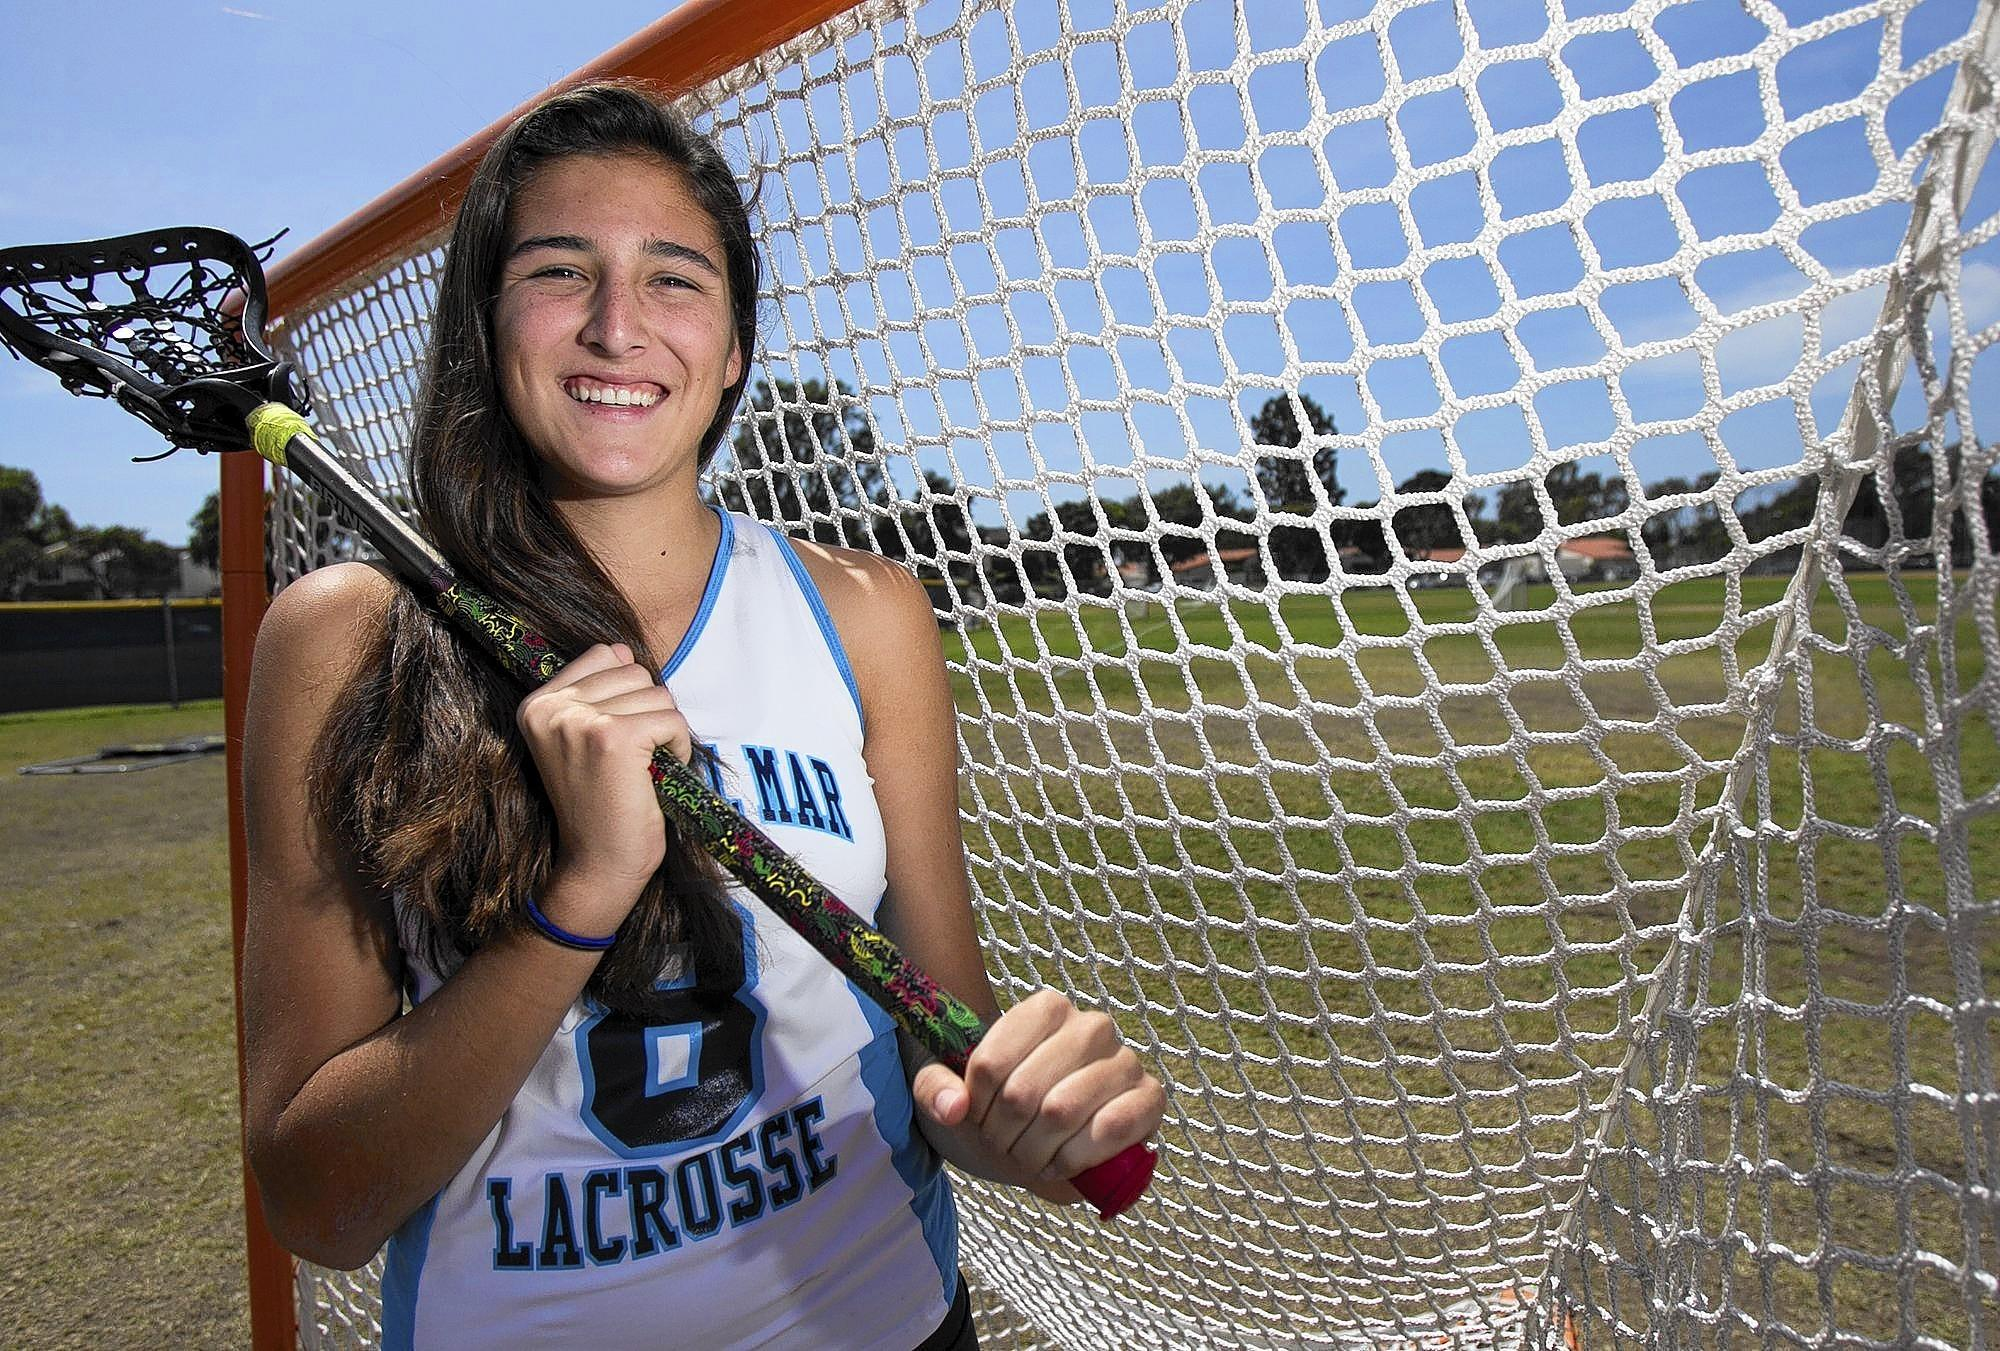 Sabrina Smith of Corona del Mar High girls' lacrosse is the Daily Pilot High School Athlete of the Week.